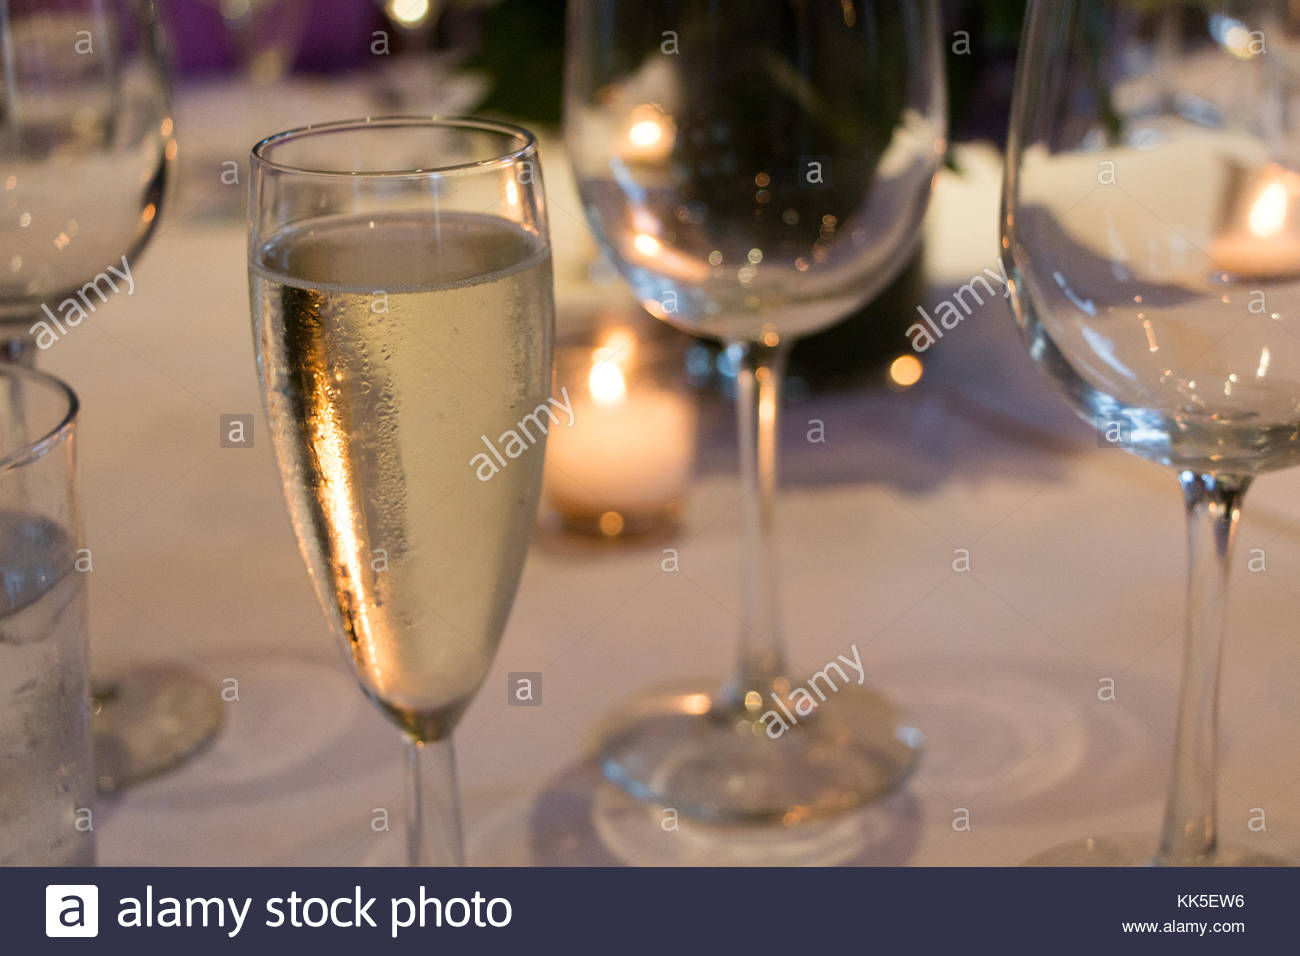 Champagne flute illuminated by candle light. - Stock Image